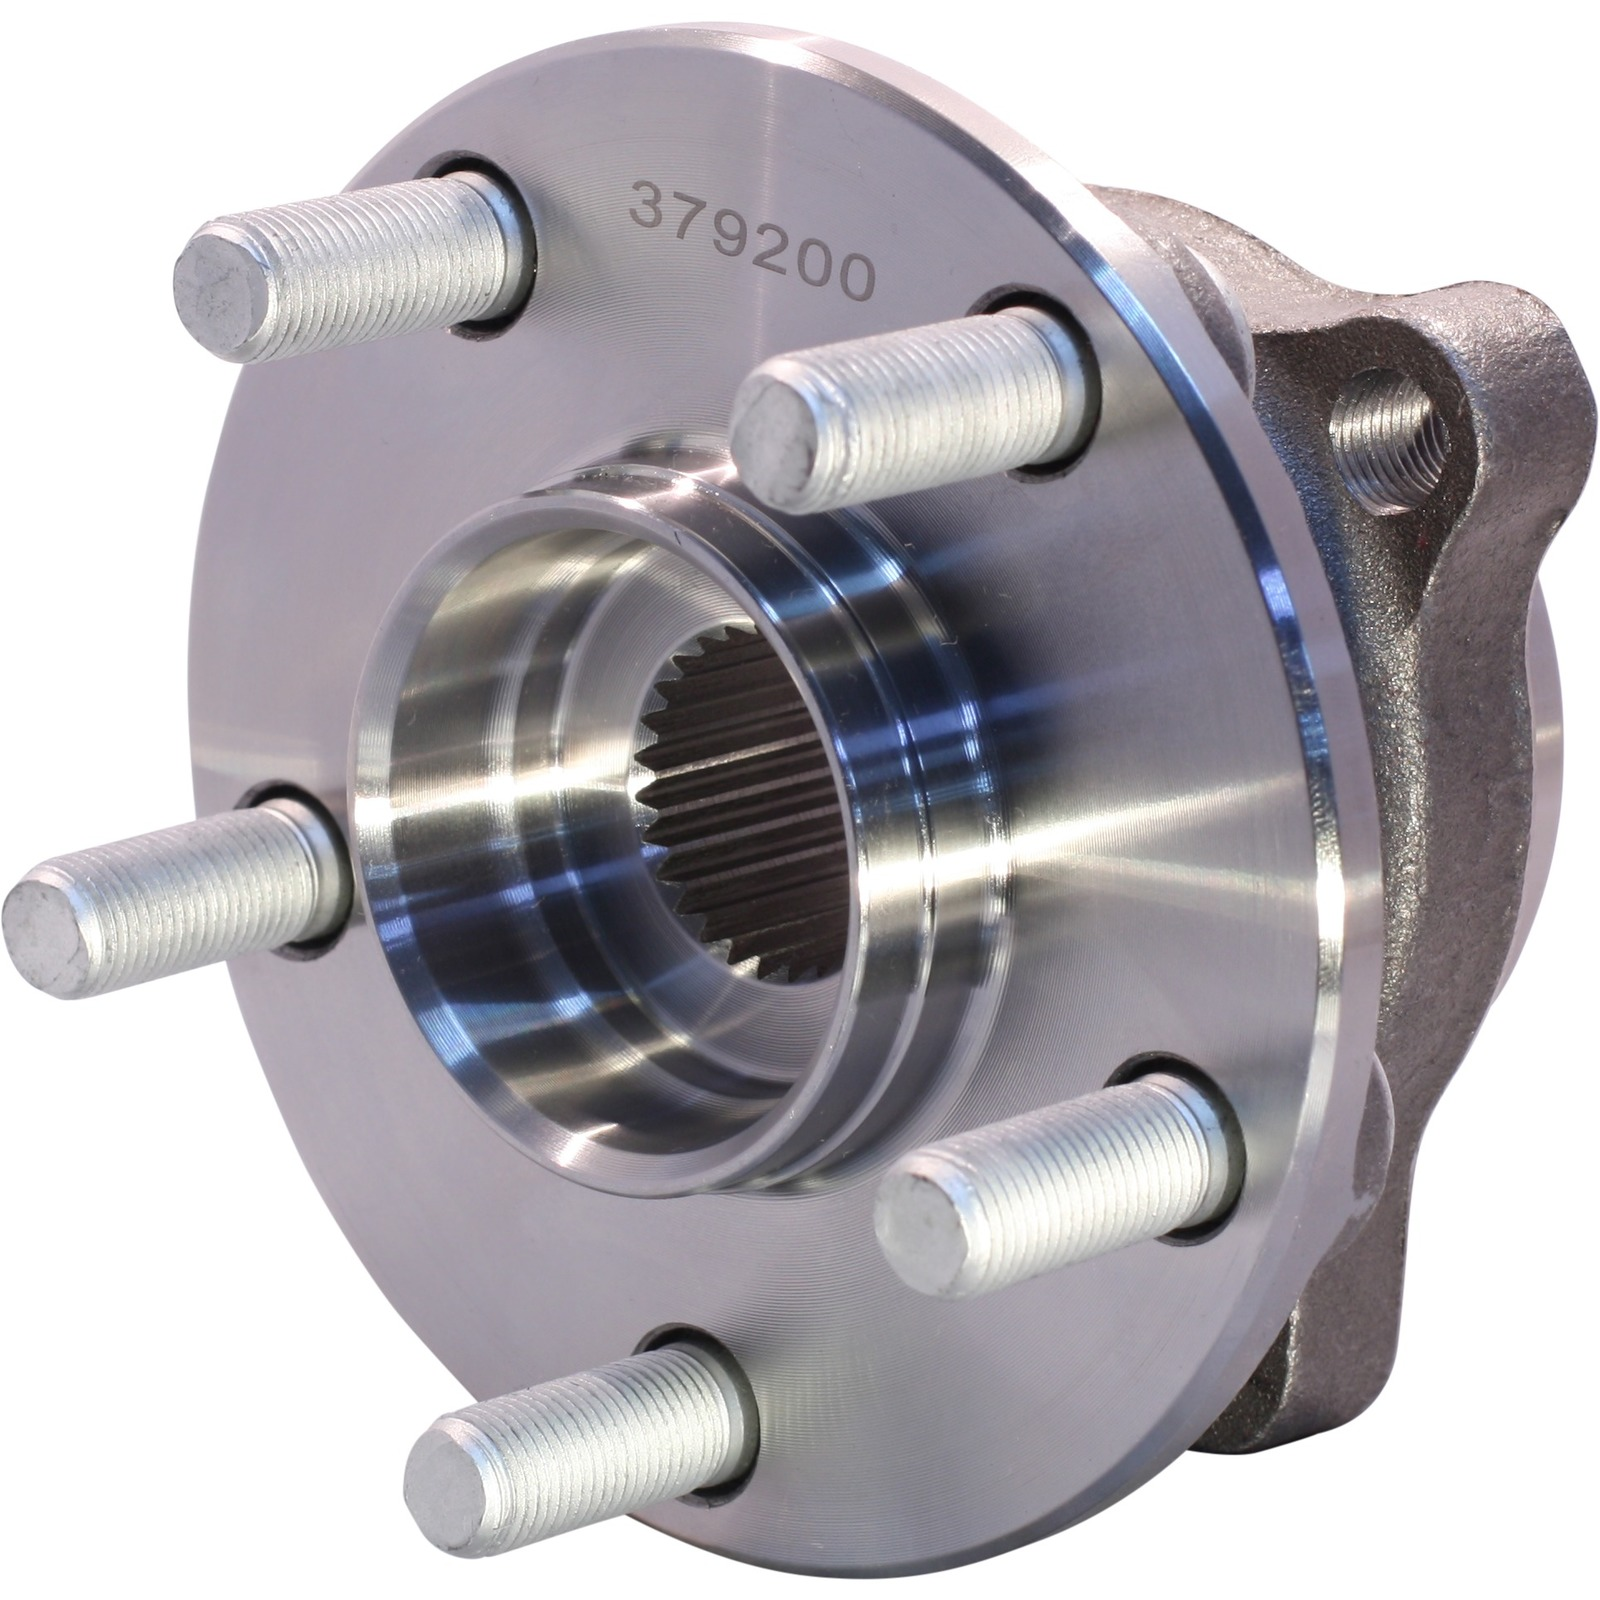 Details about Front Wheel Bearing Hub Assembly For Subaru Forester Impreza  WRX Liberty Outback